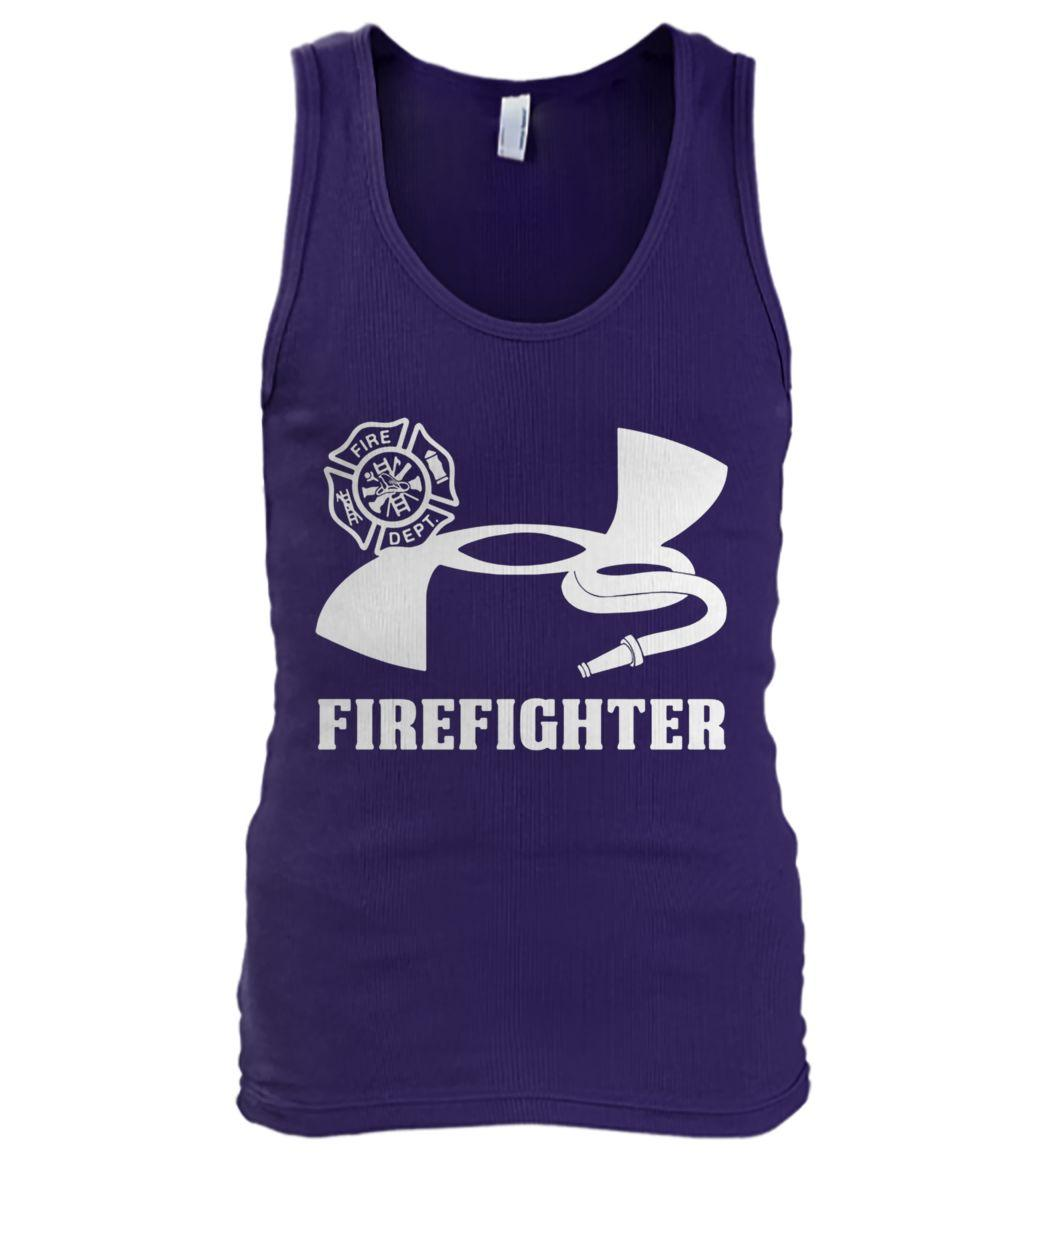 Under armour firefighter tank top